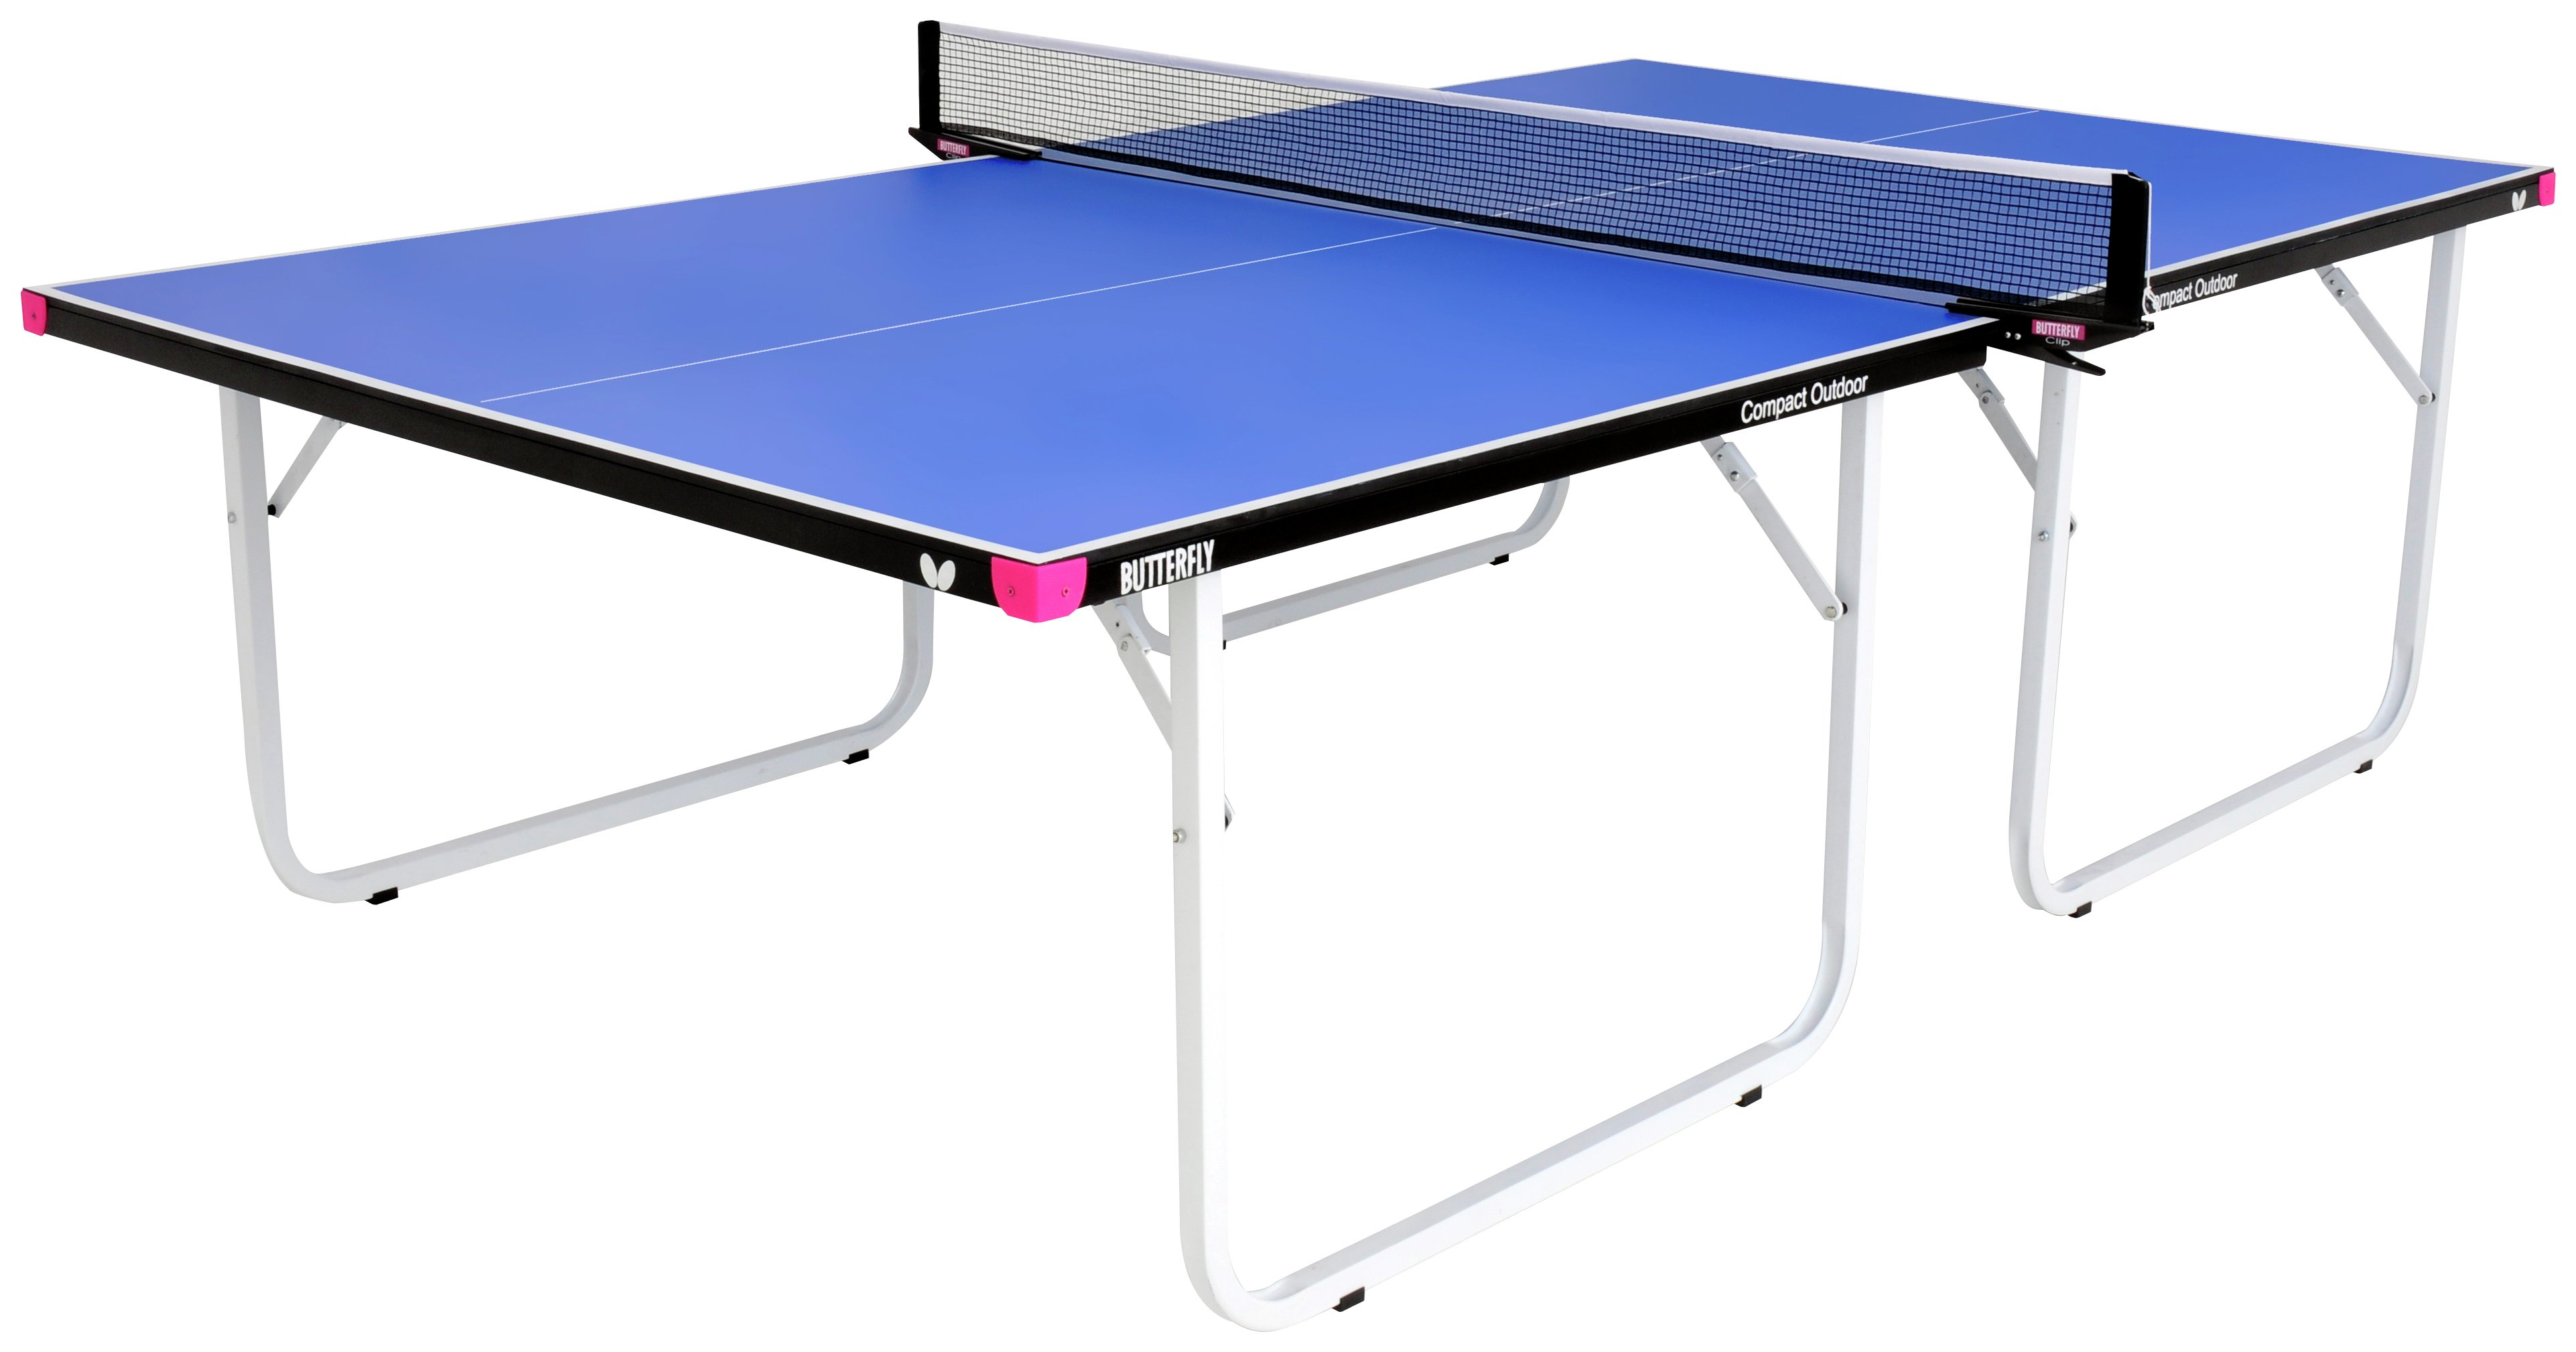 Image of Butterfly - Compact Outdoor Table Tennis Table